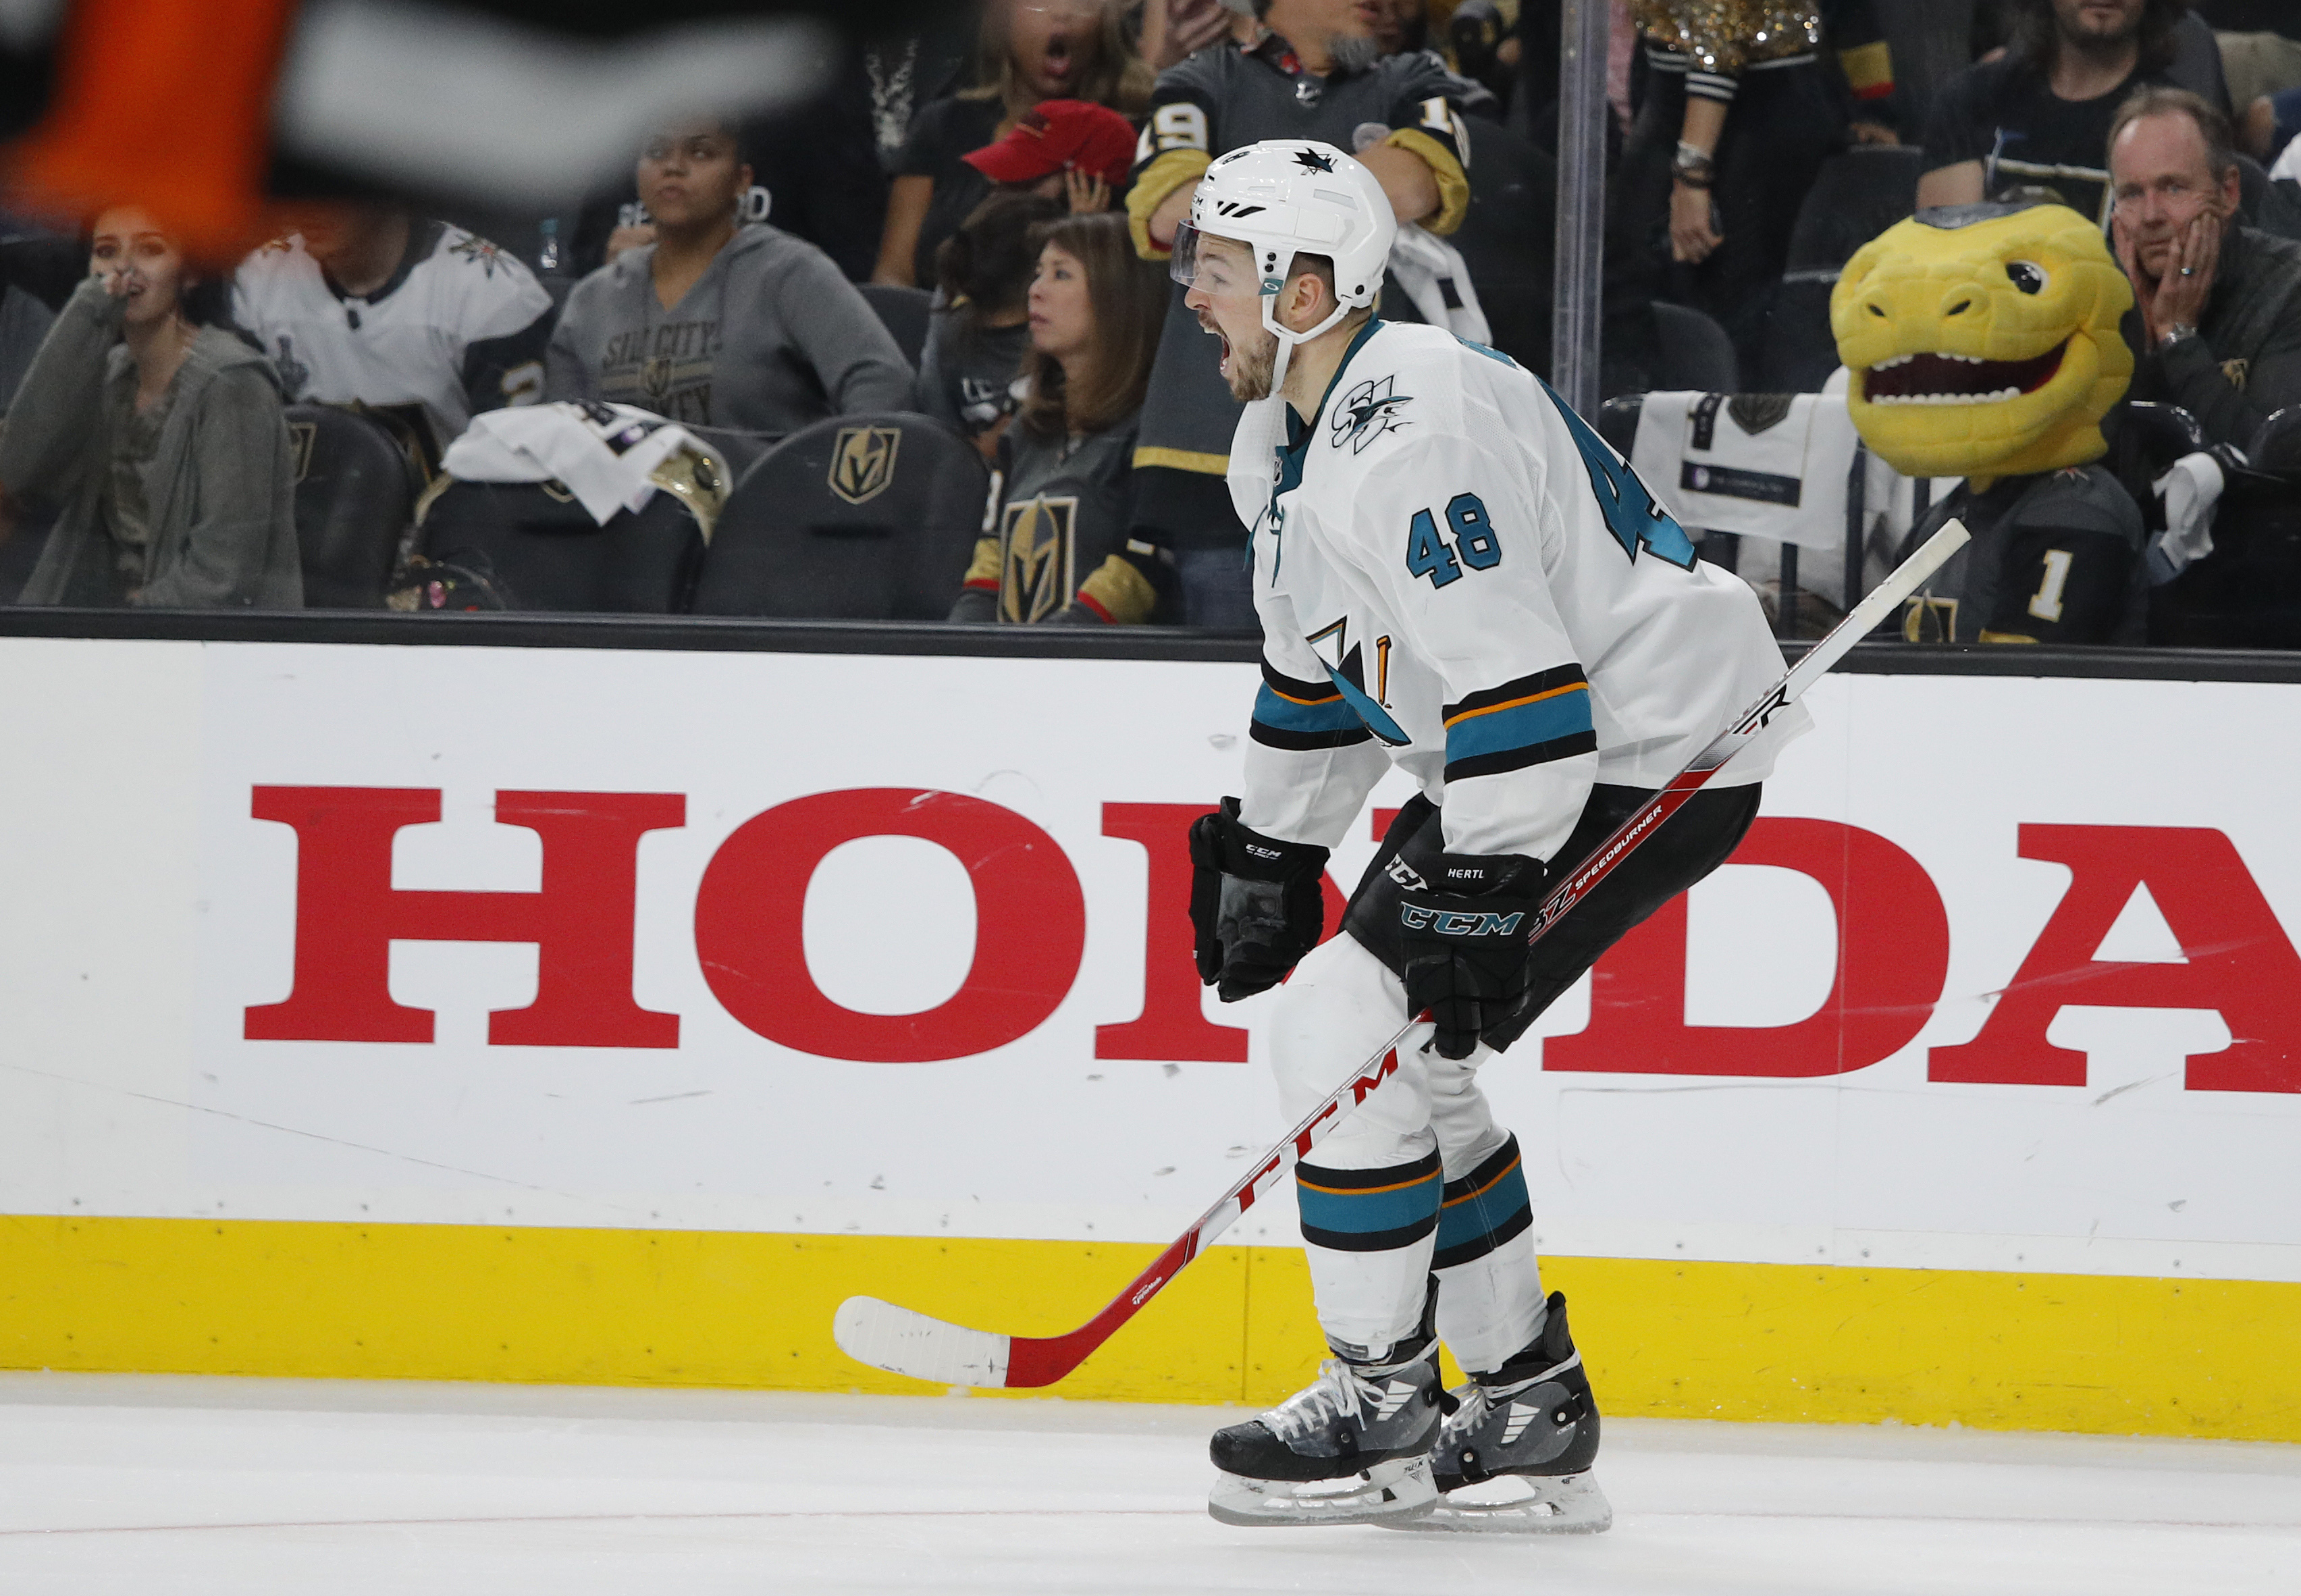 Hertl scores in 20T, Sharks beat Vegas 2-1 to force Game 7